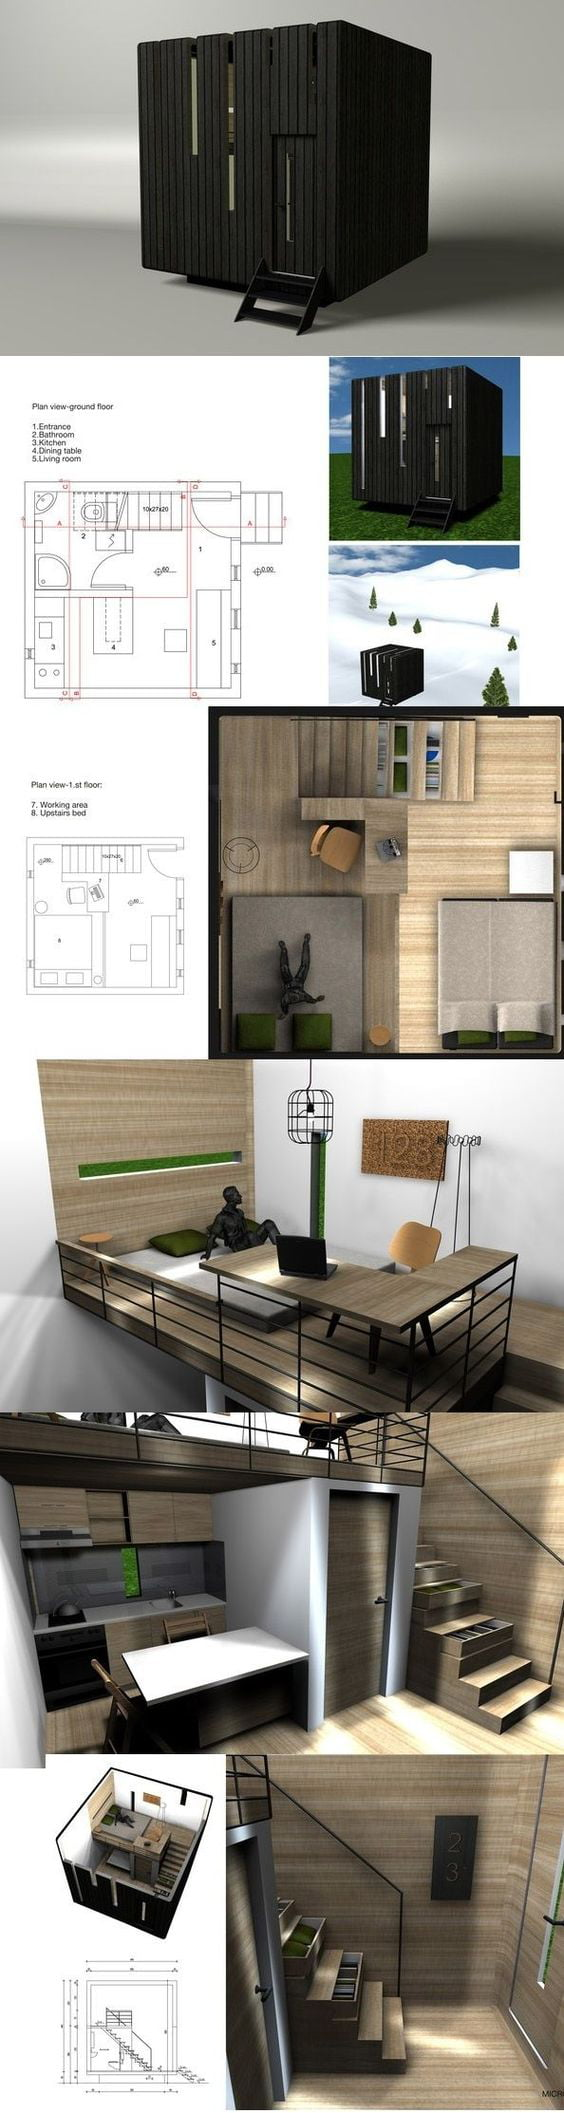 Tiny House #3 concept. Yay or nay?